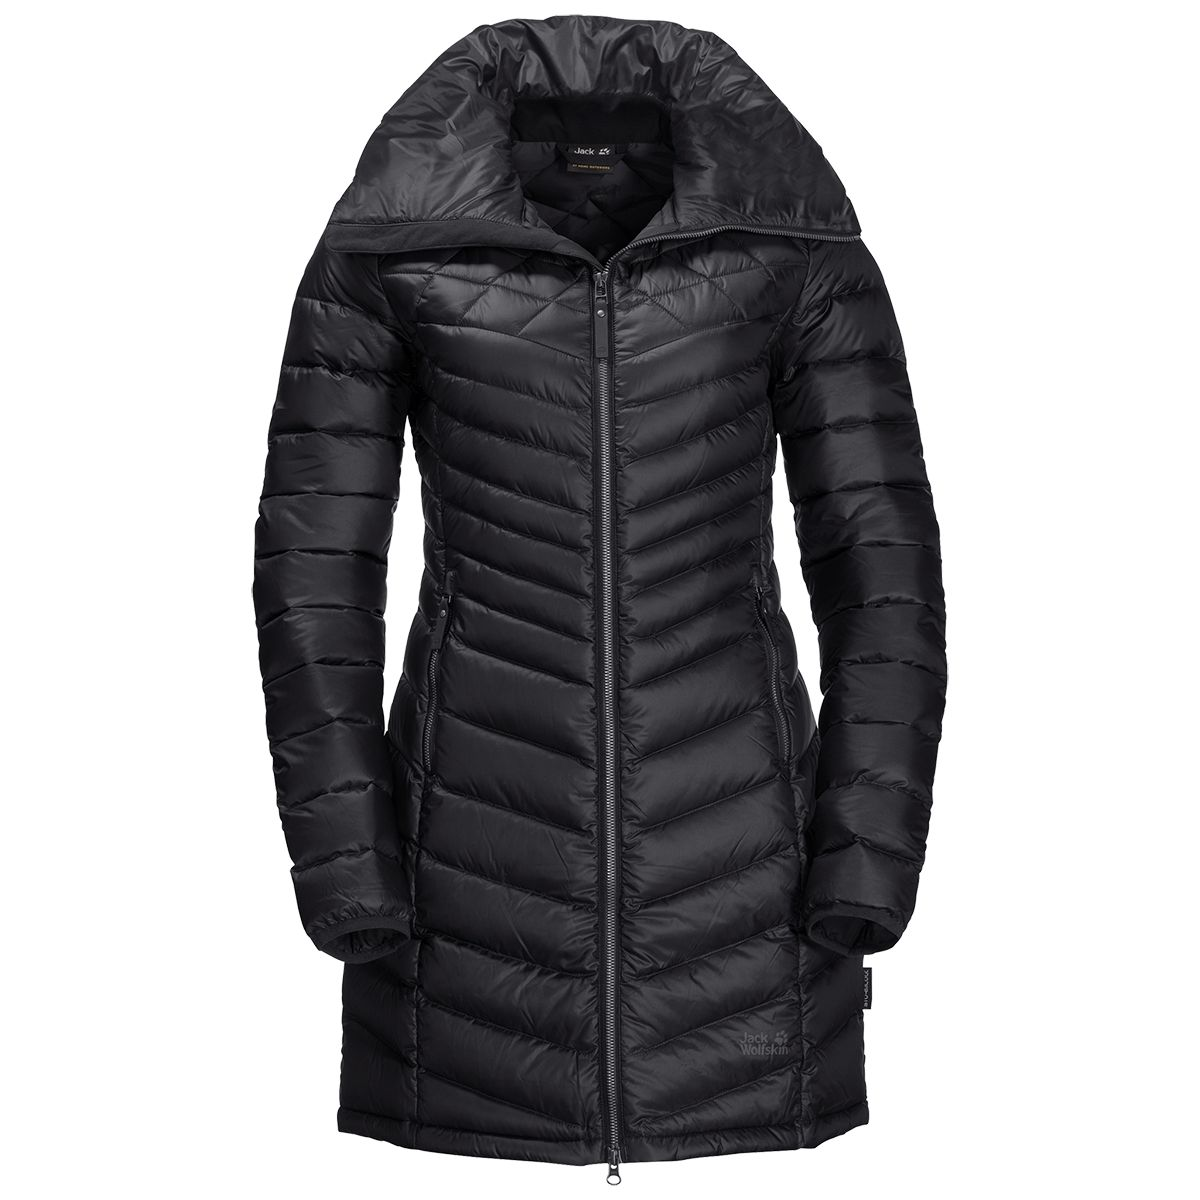 RICHMOND COAT for women